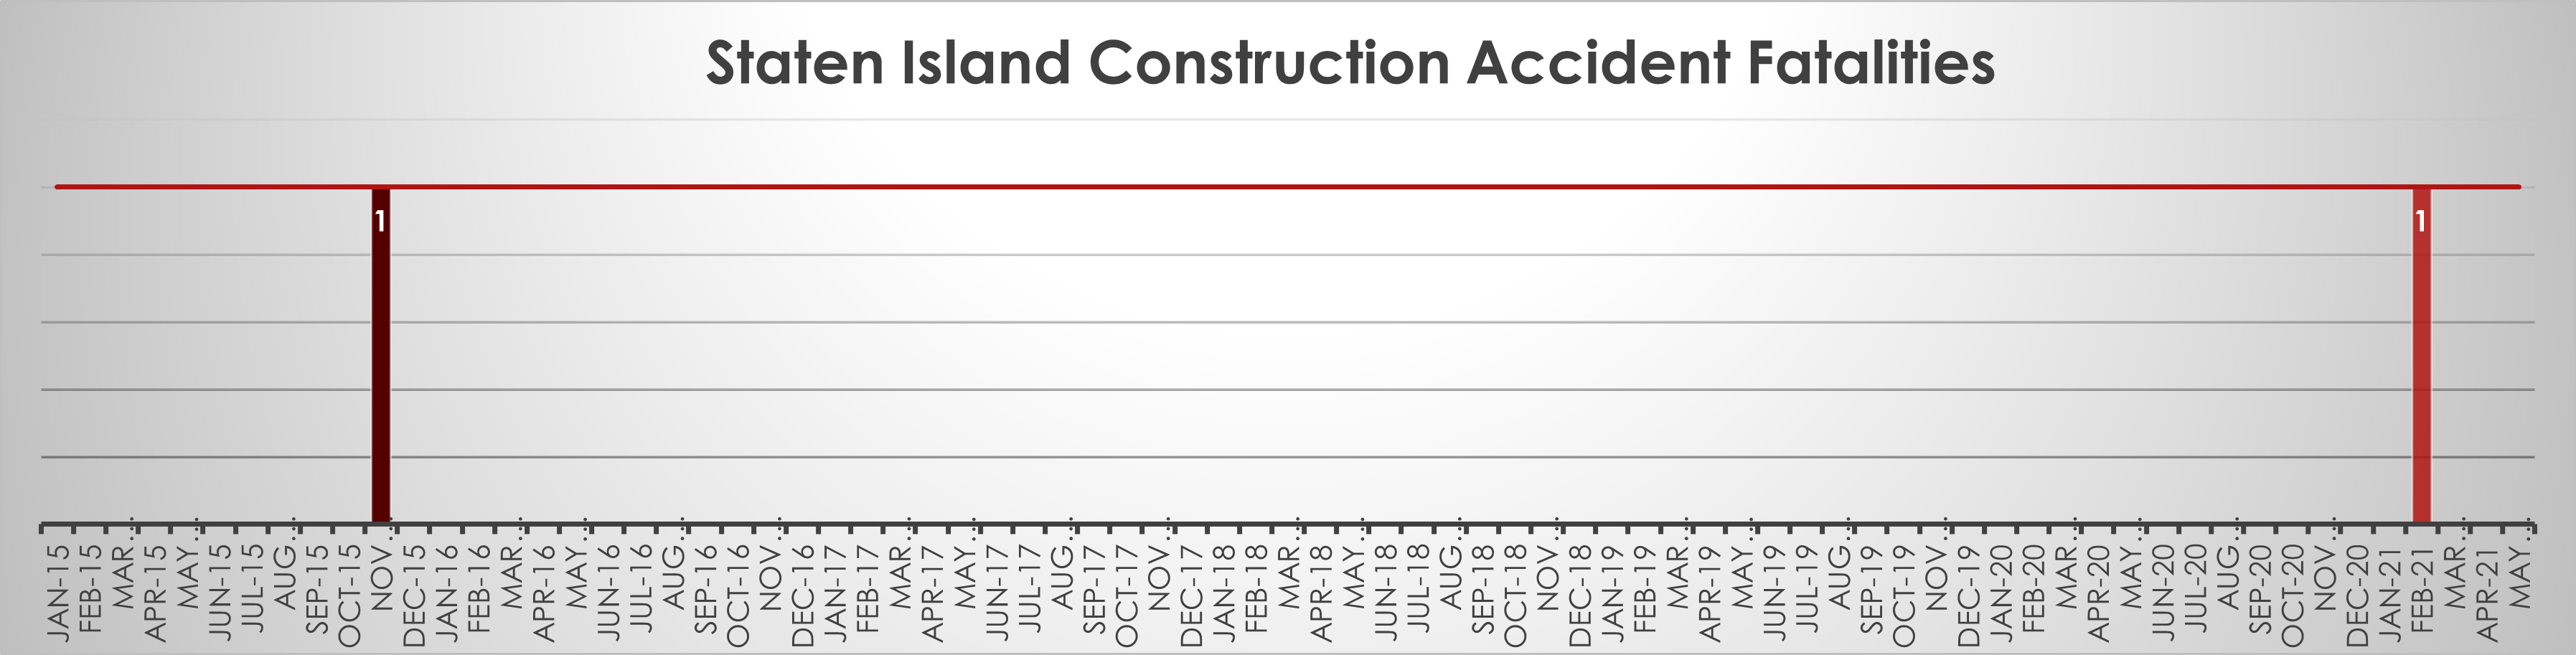 Staten Island Construction accident fatalities as of May 21